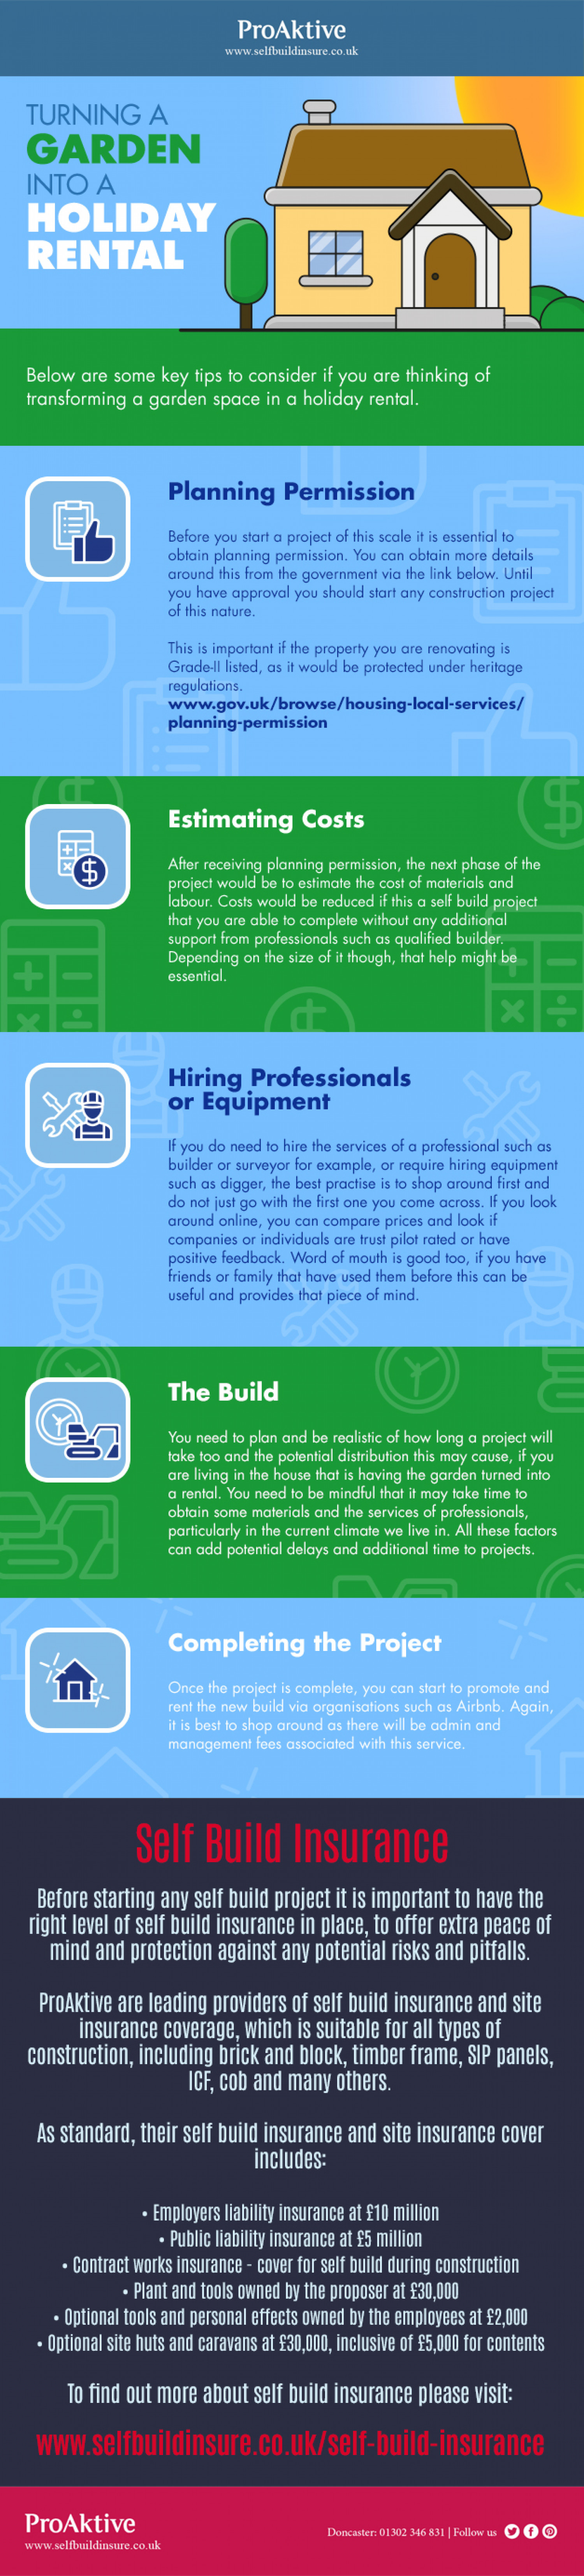 Turning a Garden into a Holiday Rental Infographic